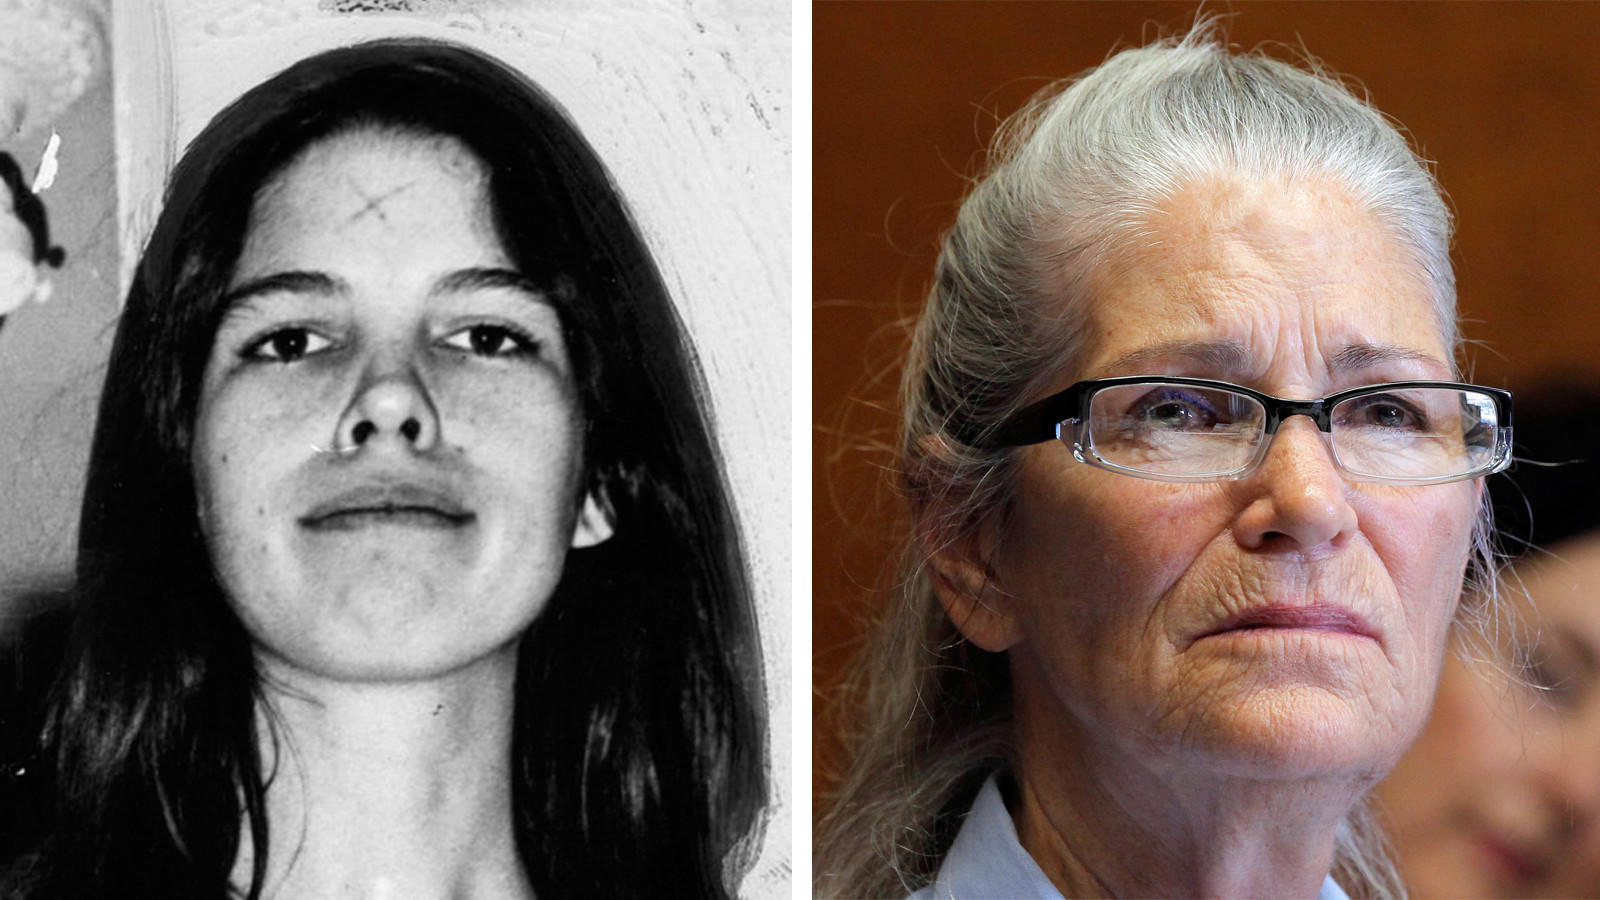 leslie van houten stabbed rosemary labianca 14 times will. Black Bedroom Furniture Sets. Home Design Ideas